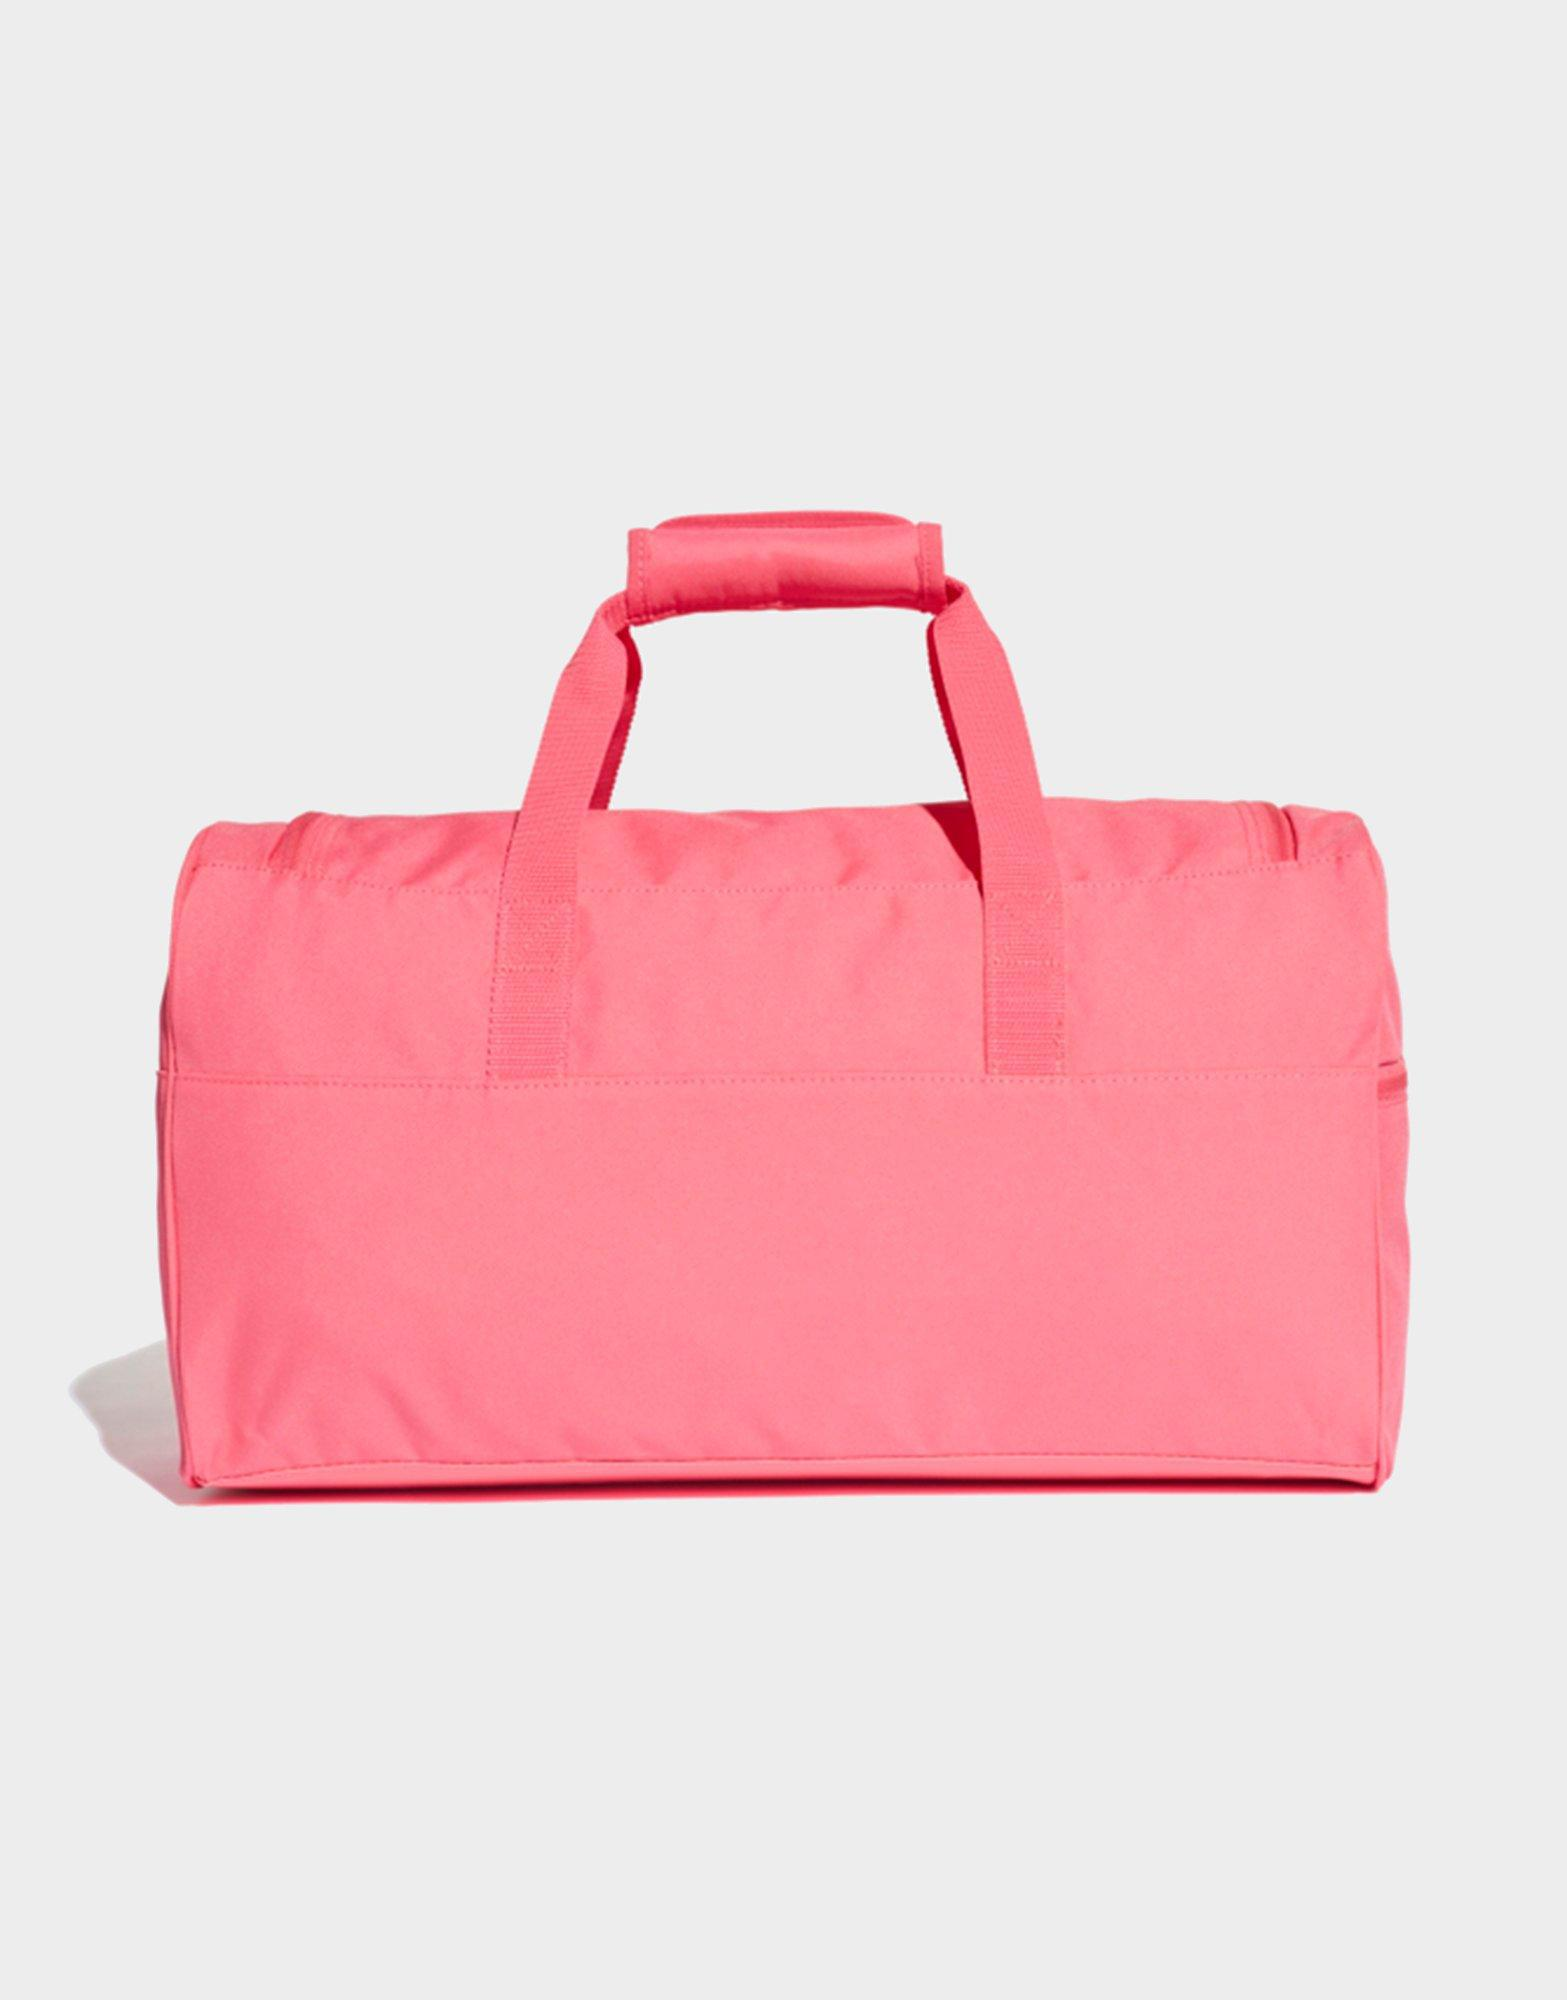 ce37a8ed8872 Lyst - adidas Lin Per Tb S Women s Sports Bag In Pink in Pink for Men